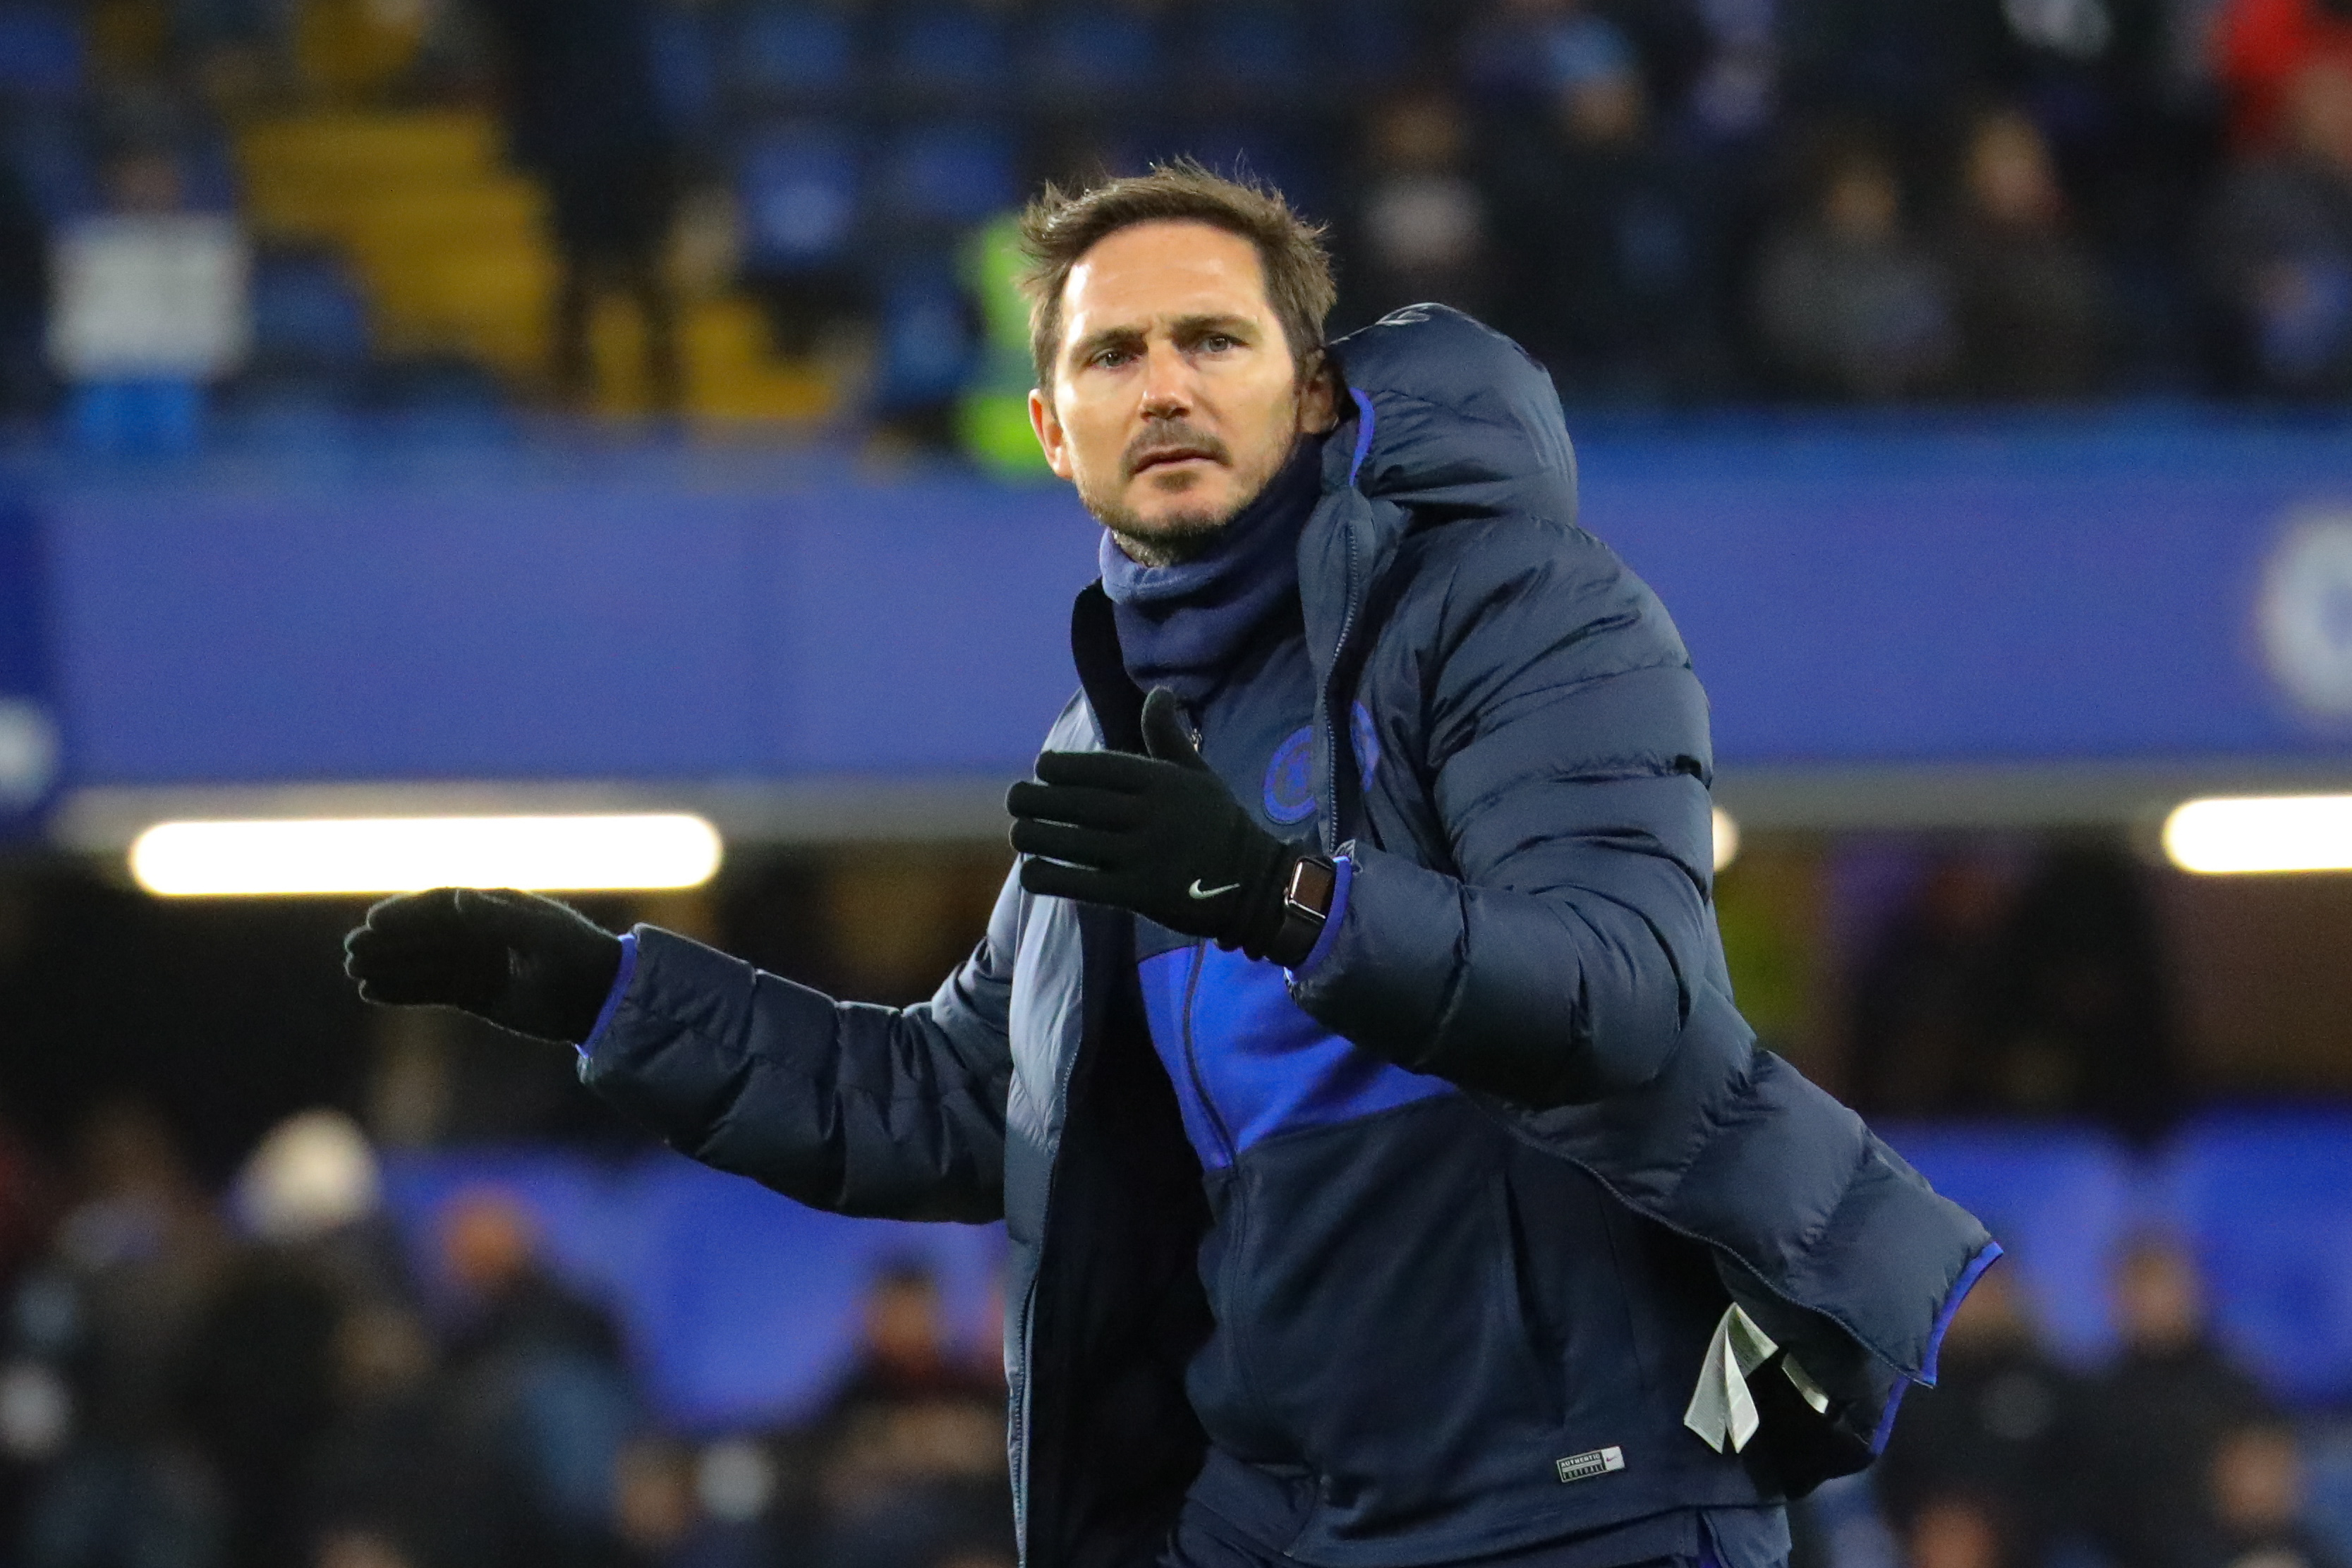 📈 Fast Facts from the EPL: Lampard guns for a double over his old boss, Wilder's Blades looking sharp